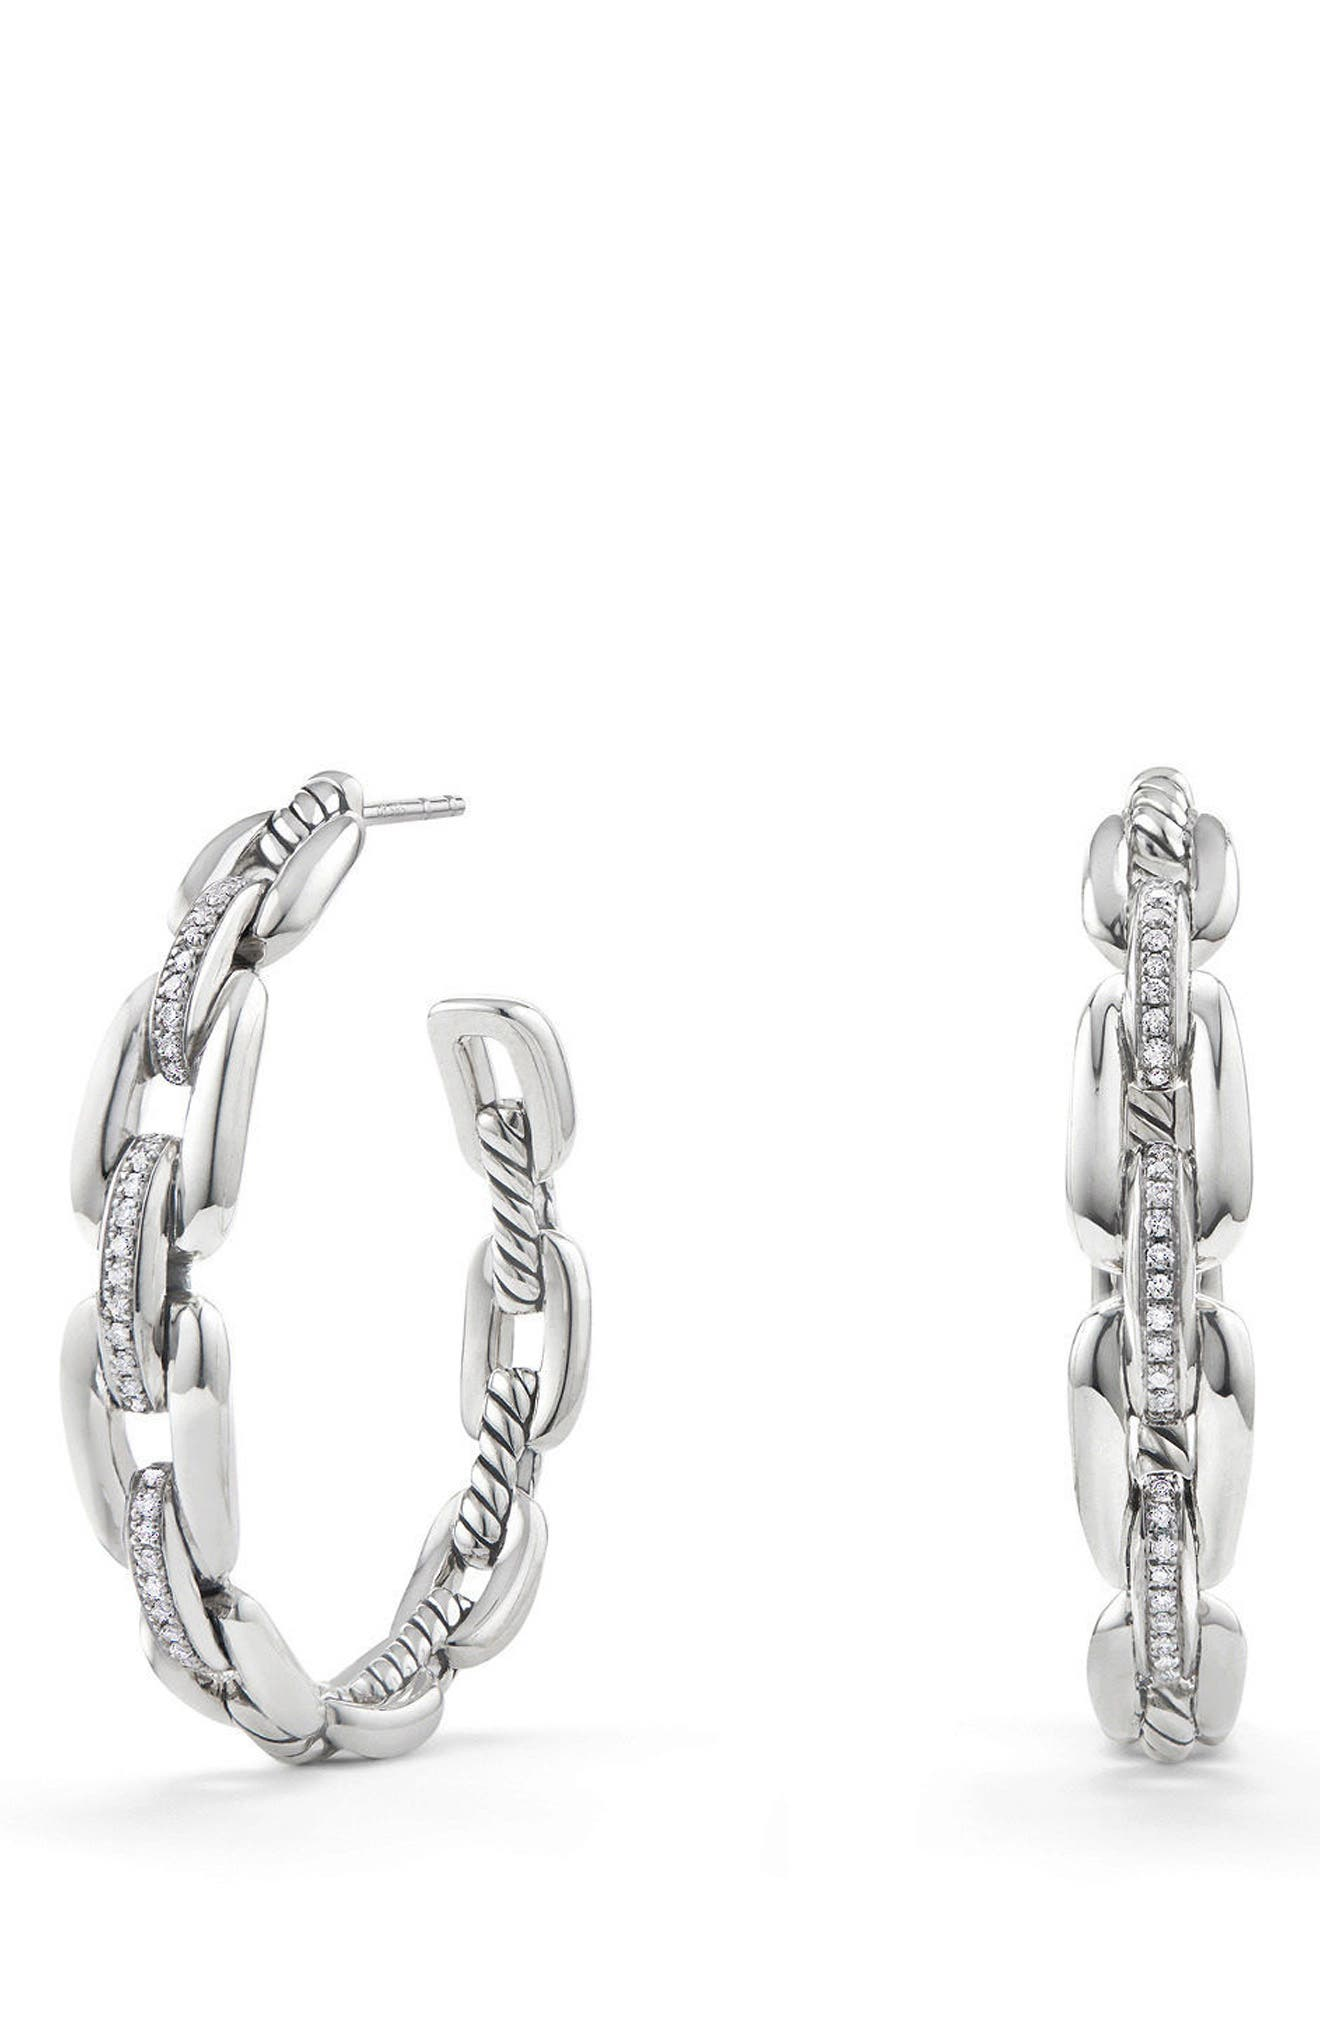 Main Image - David Yurman Wellesley 23mm Hoop Earrings with Diamonds